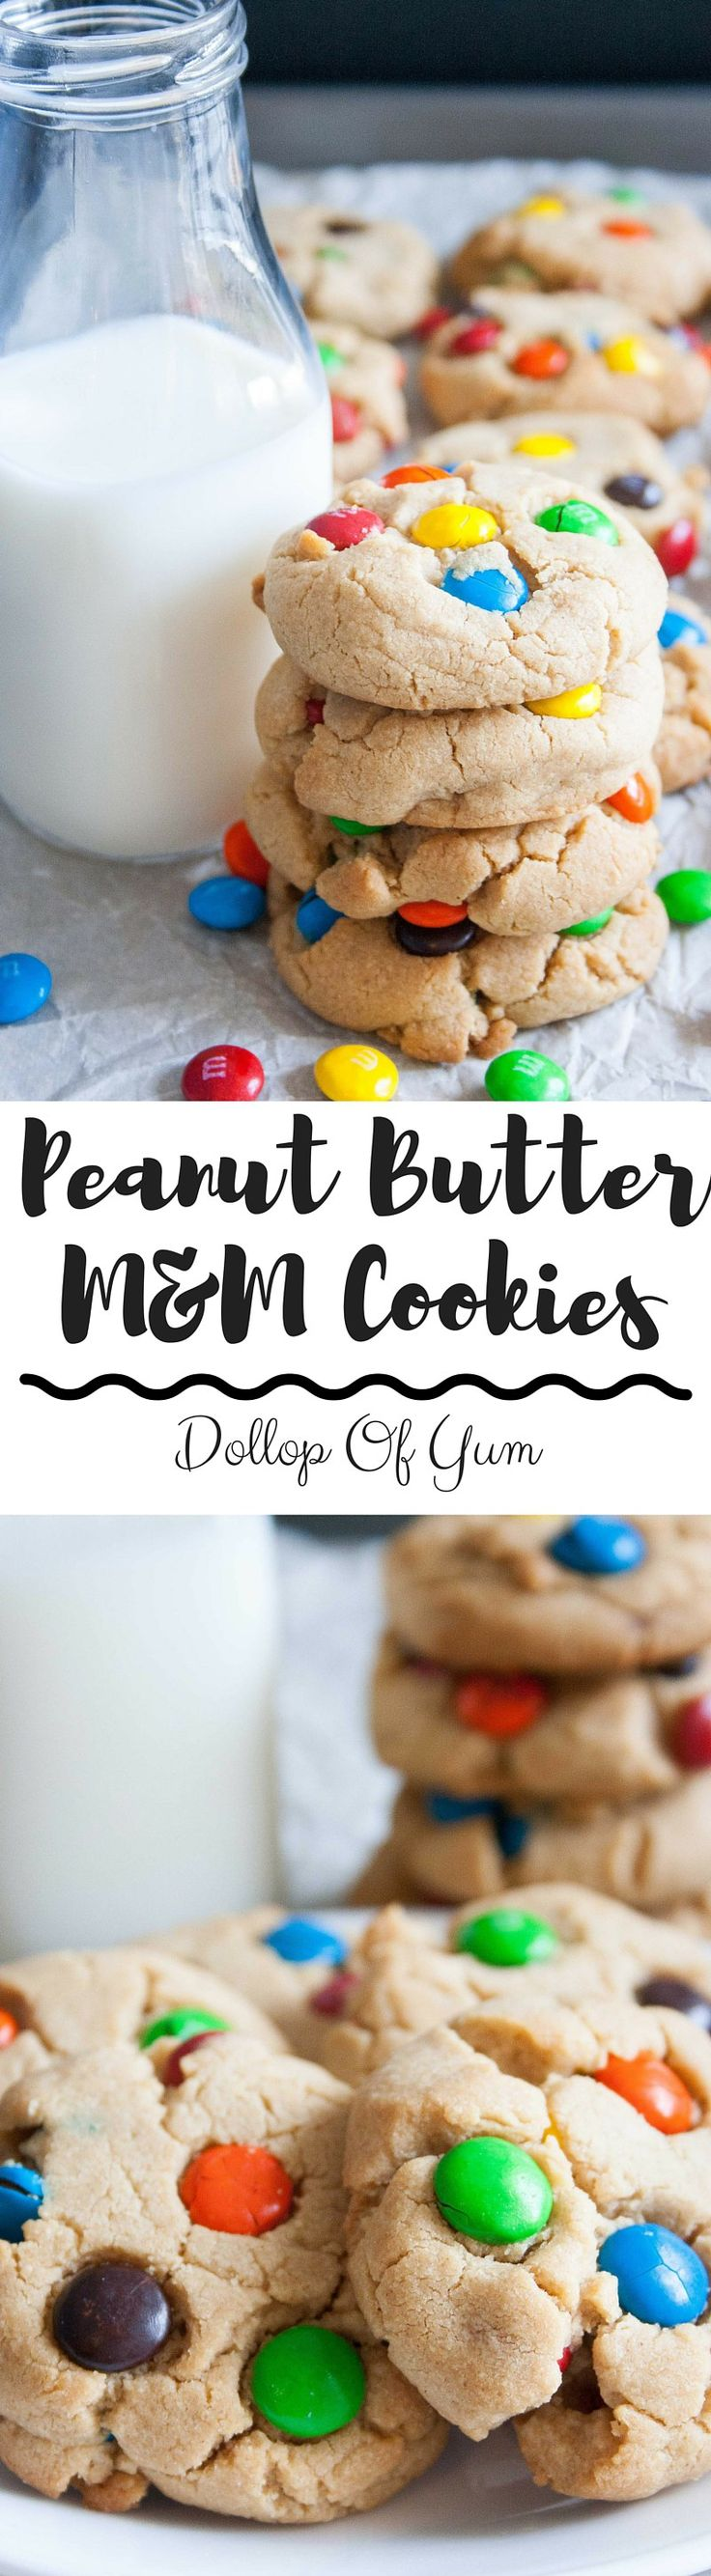 Peanut Butter M&M Cookies! Super soft and thick and the BEST M&M cookies you'll ever have!